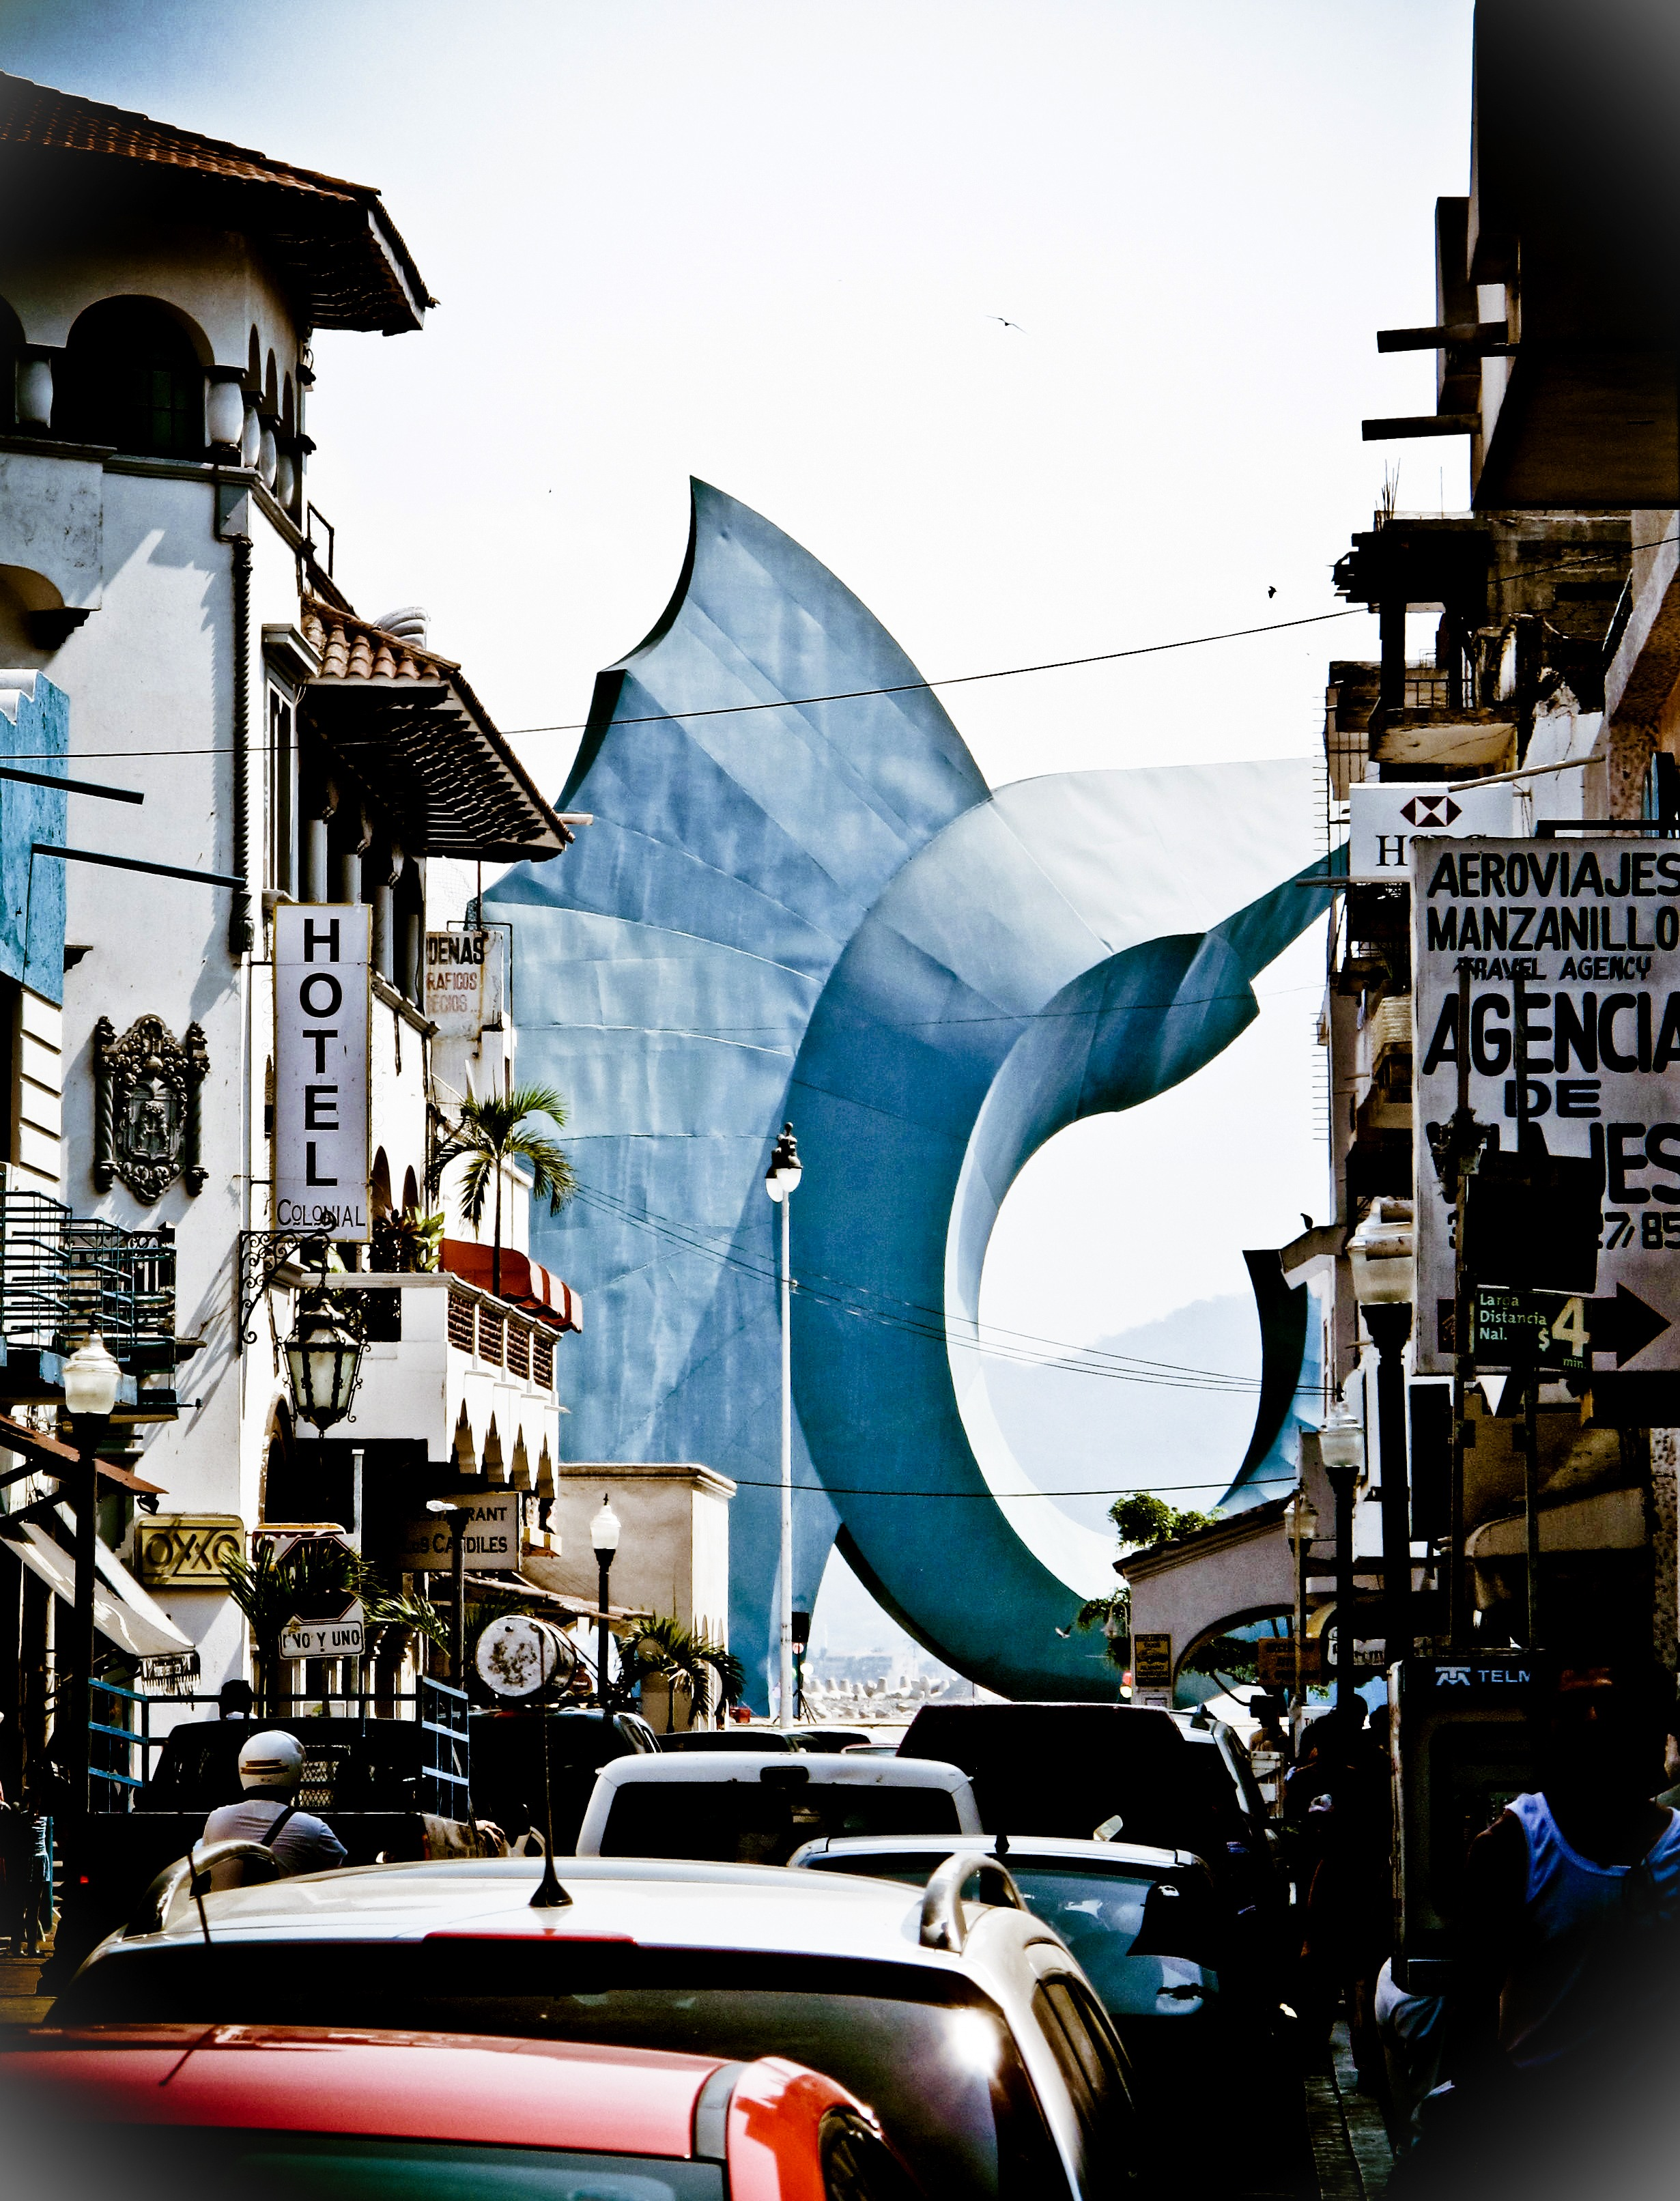 The Sail Fish Statue, Manzanillo, Mexico